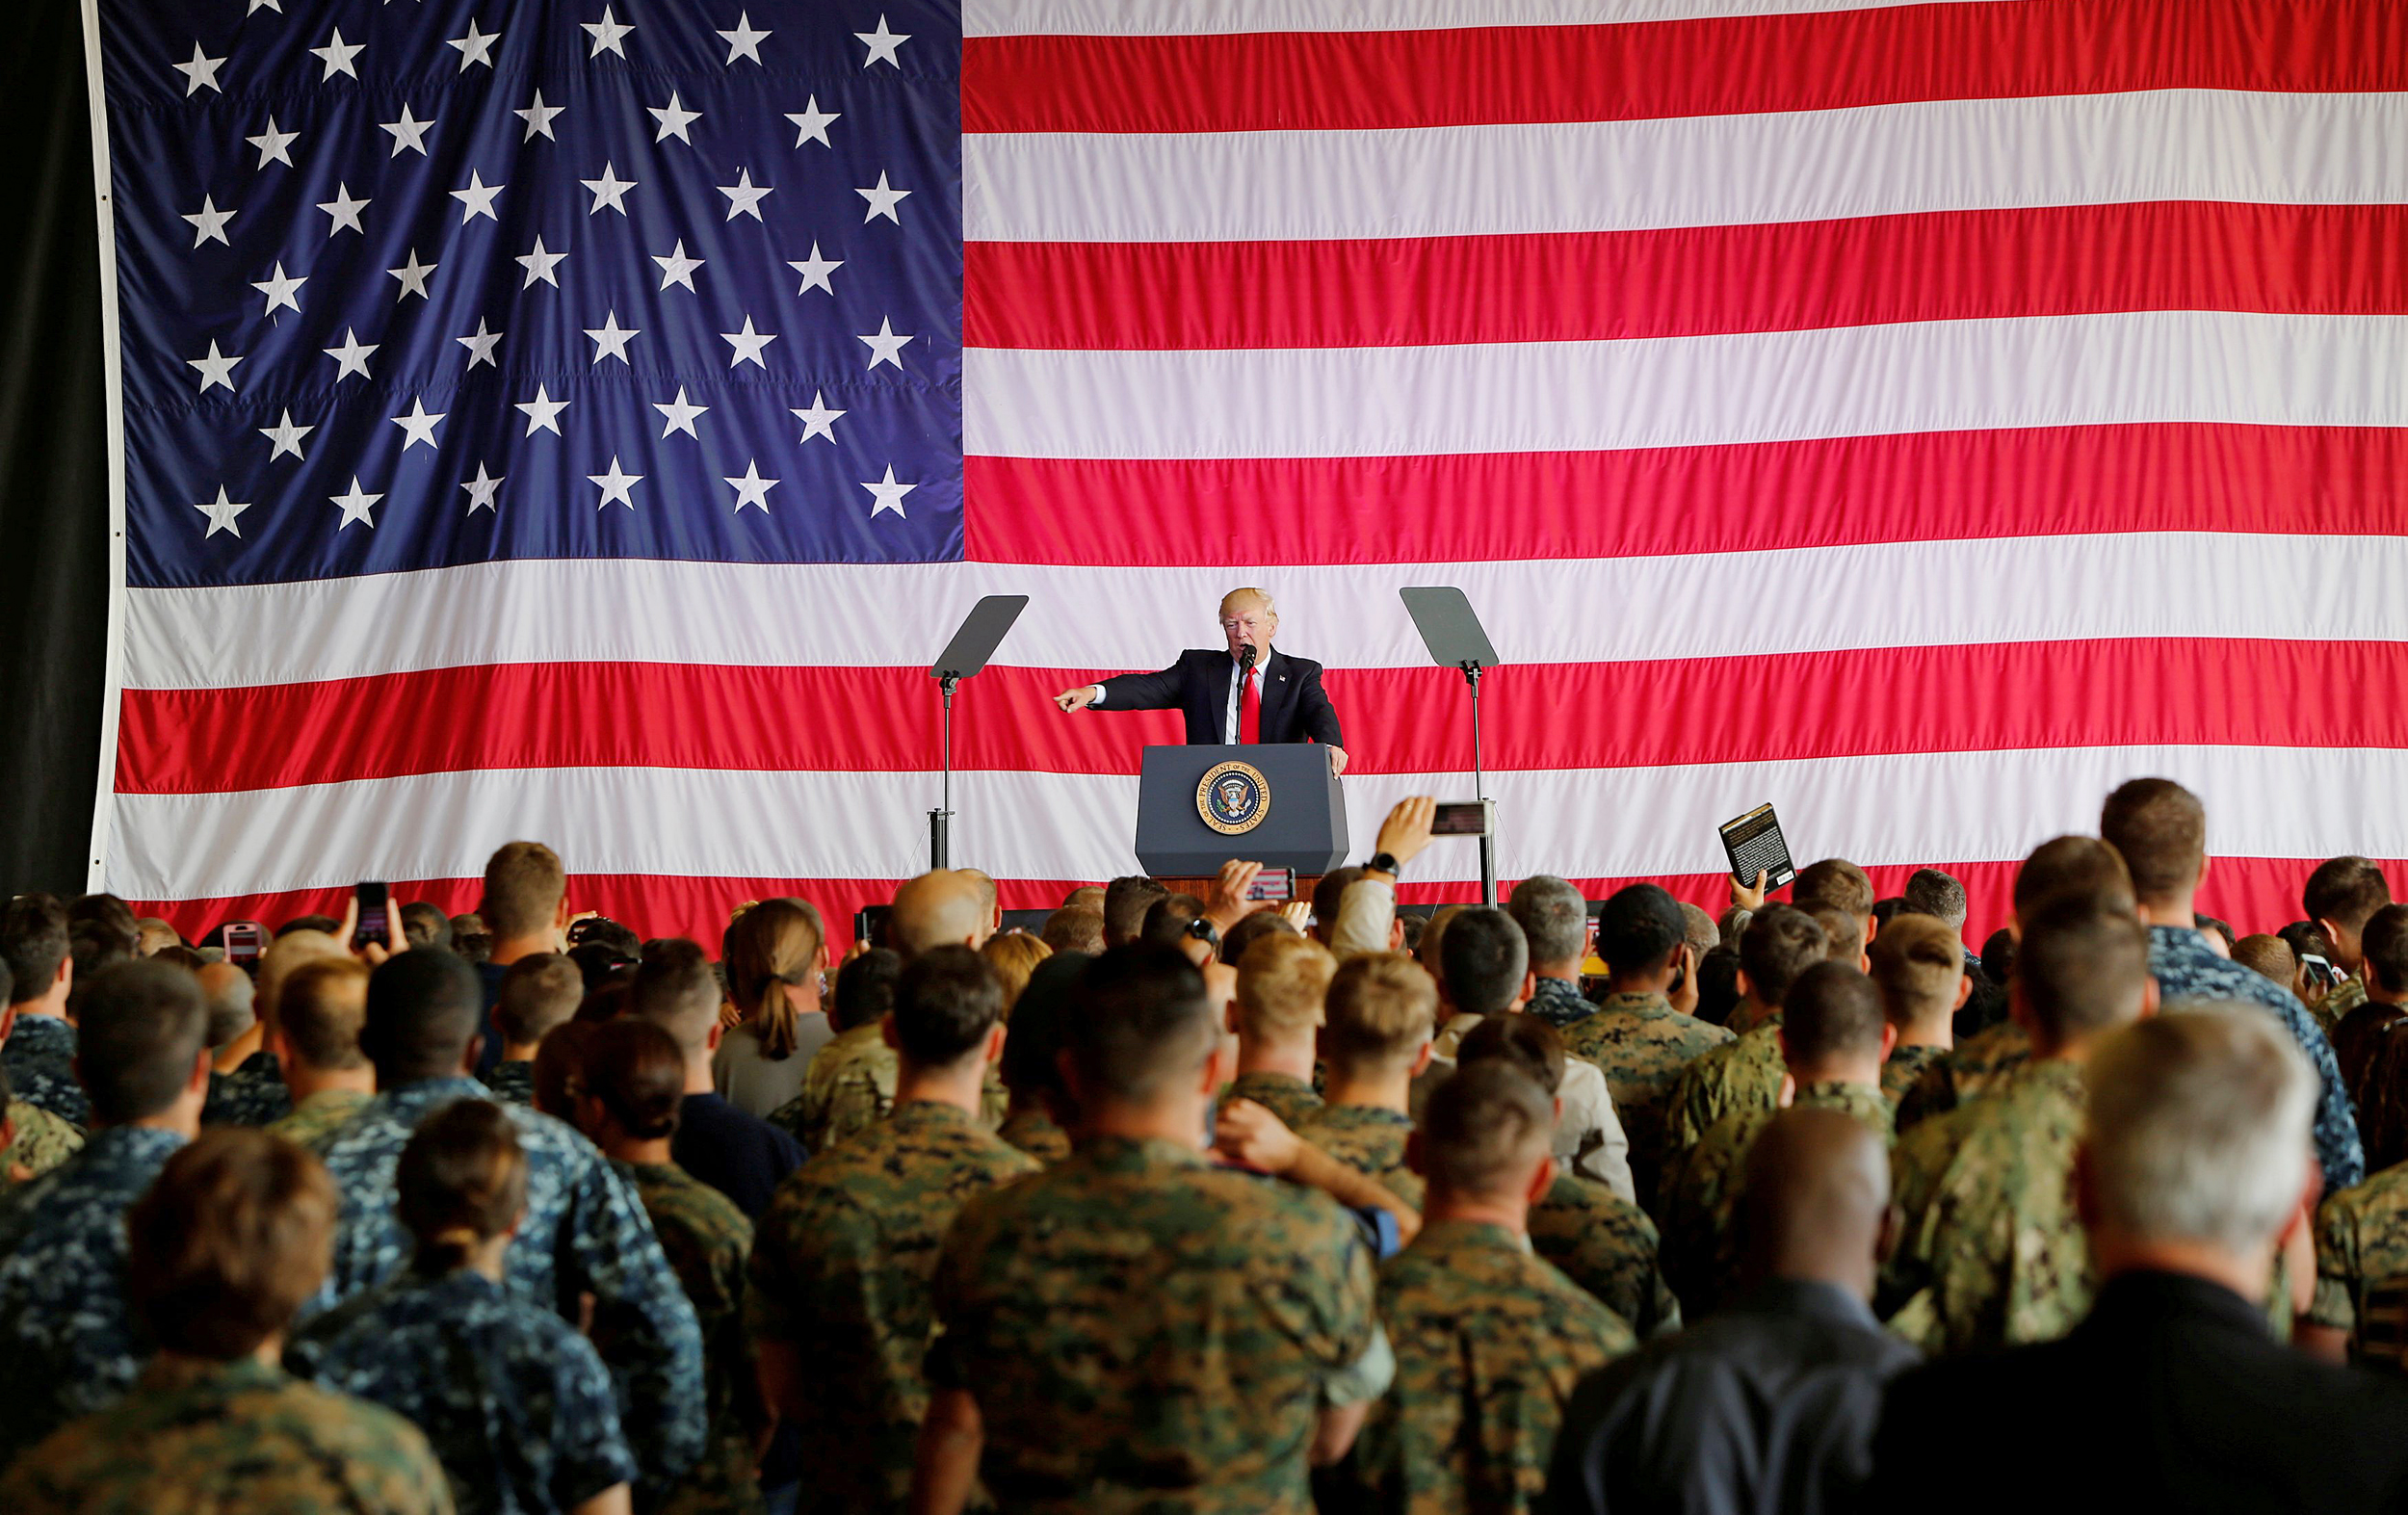 Image: U.S. President Donald Trump delivers remarks to U.S. military personnel at Naval Air Station Sigonella following the G7 Summit, in Sigonella